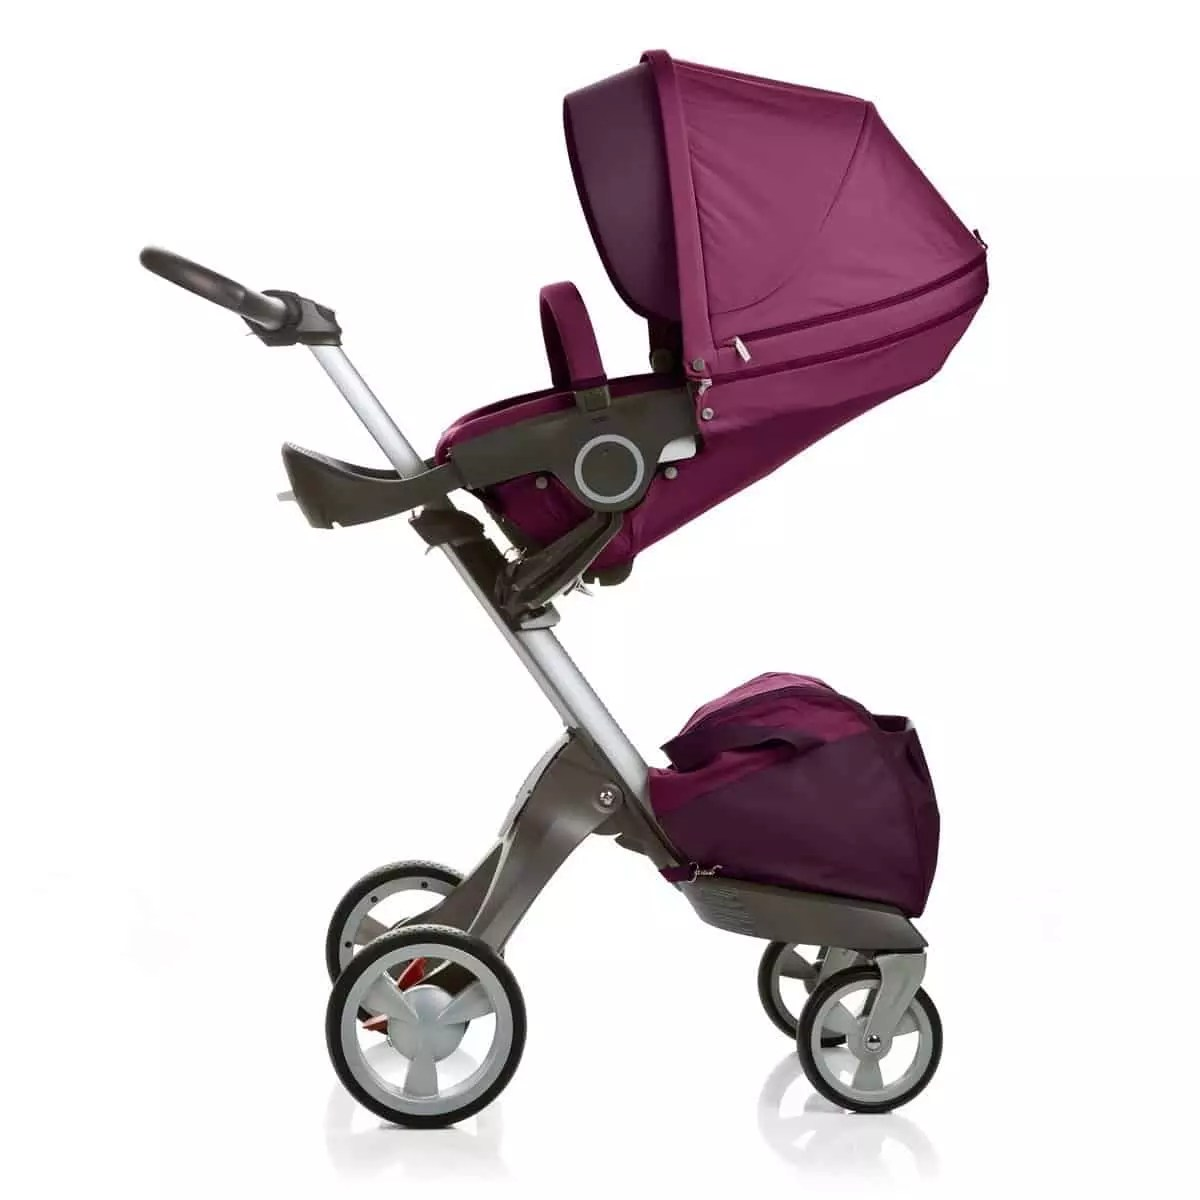 Stokke Stroller Weight Stroller Brand Review Stokke Baby Bargains